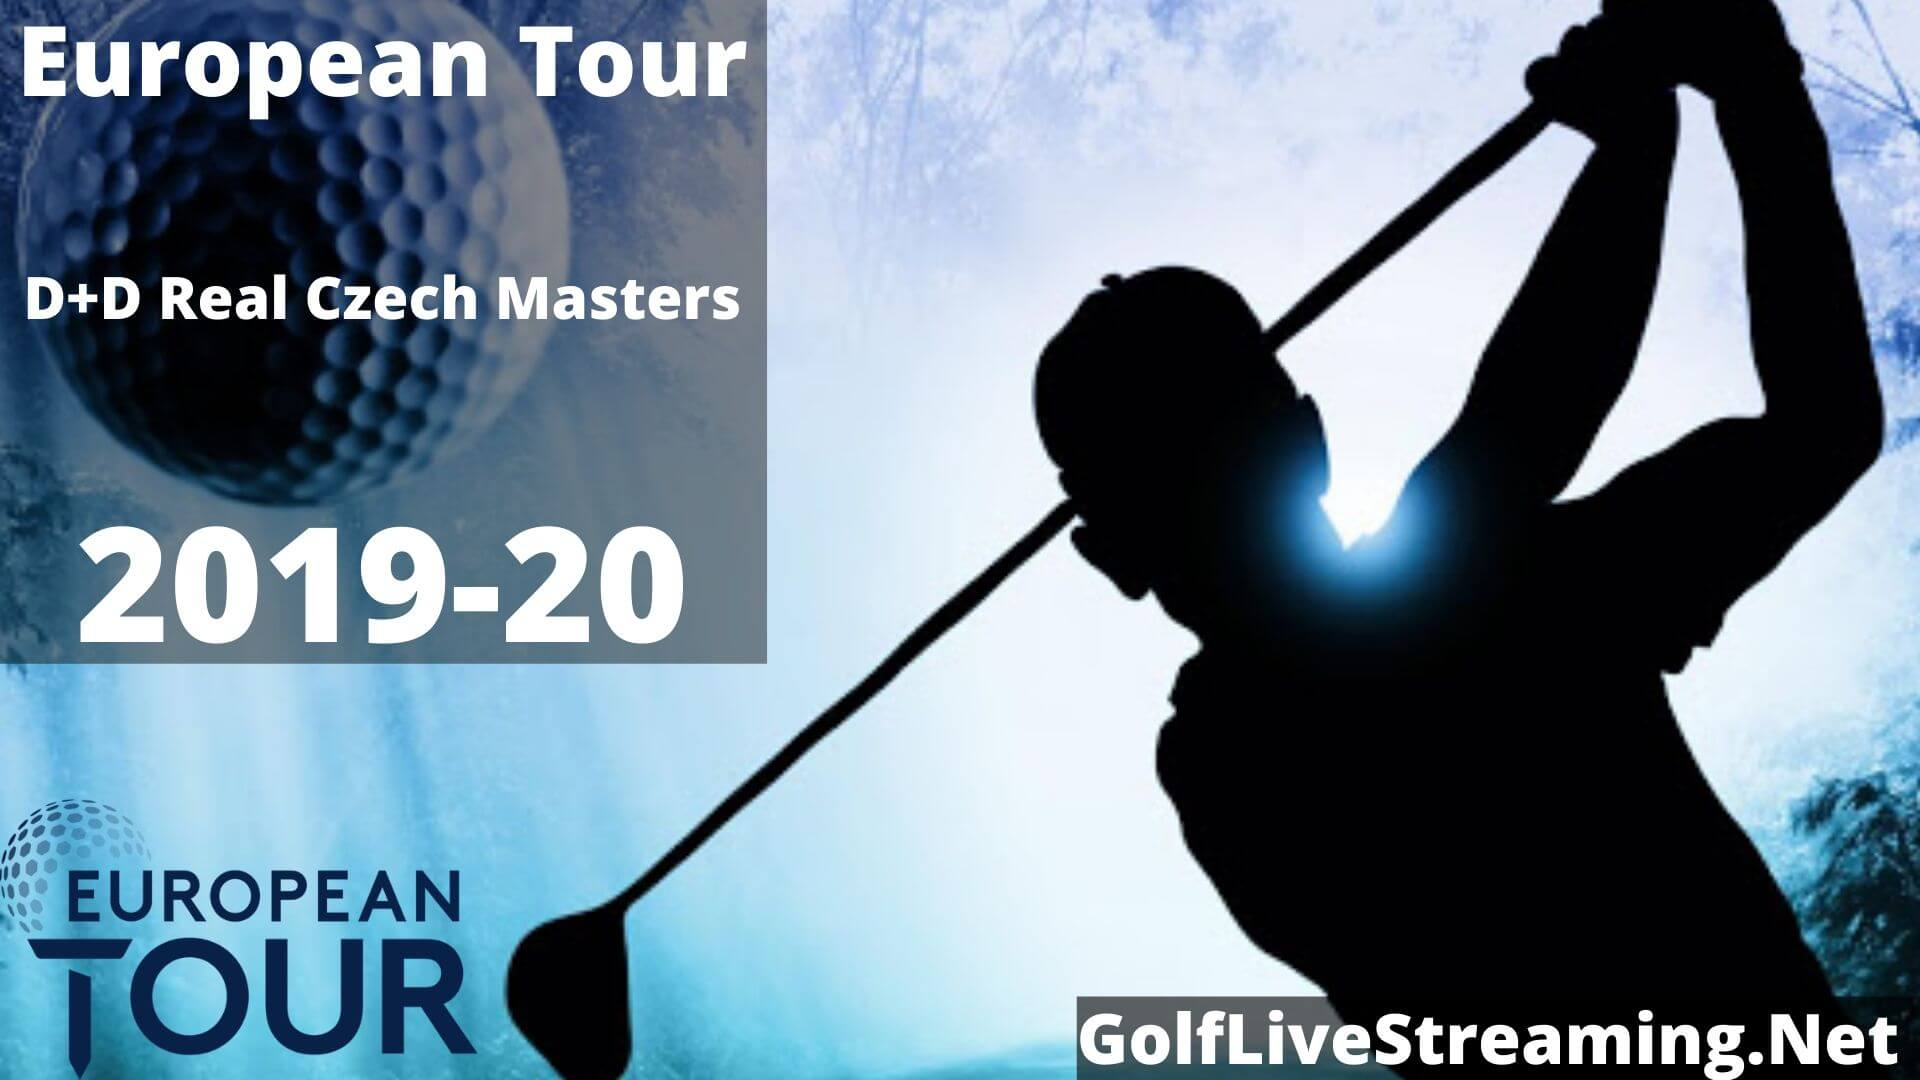 D+D Real Czech Masters Live Stream 2020 | European Tour Round 1